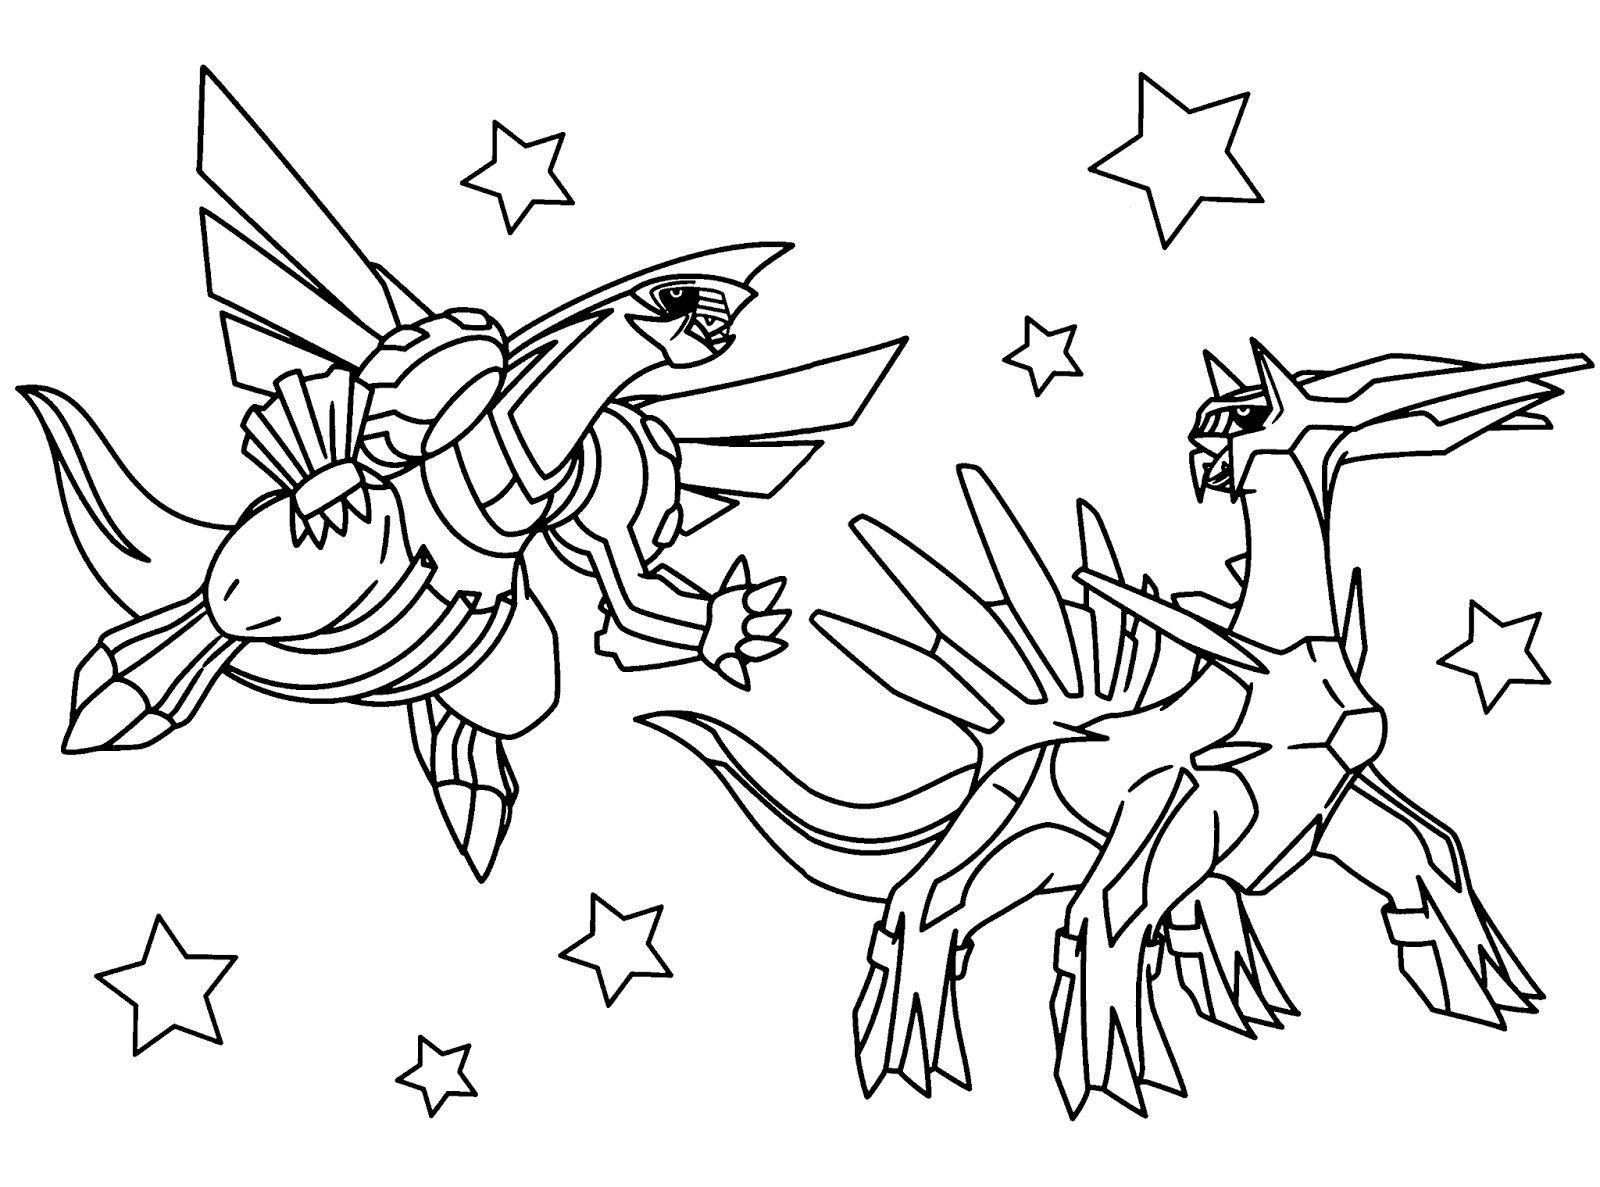 37+ Cute legendary pokemon coloring pages ideas in 2021